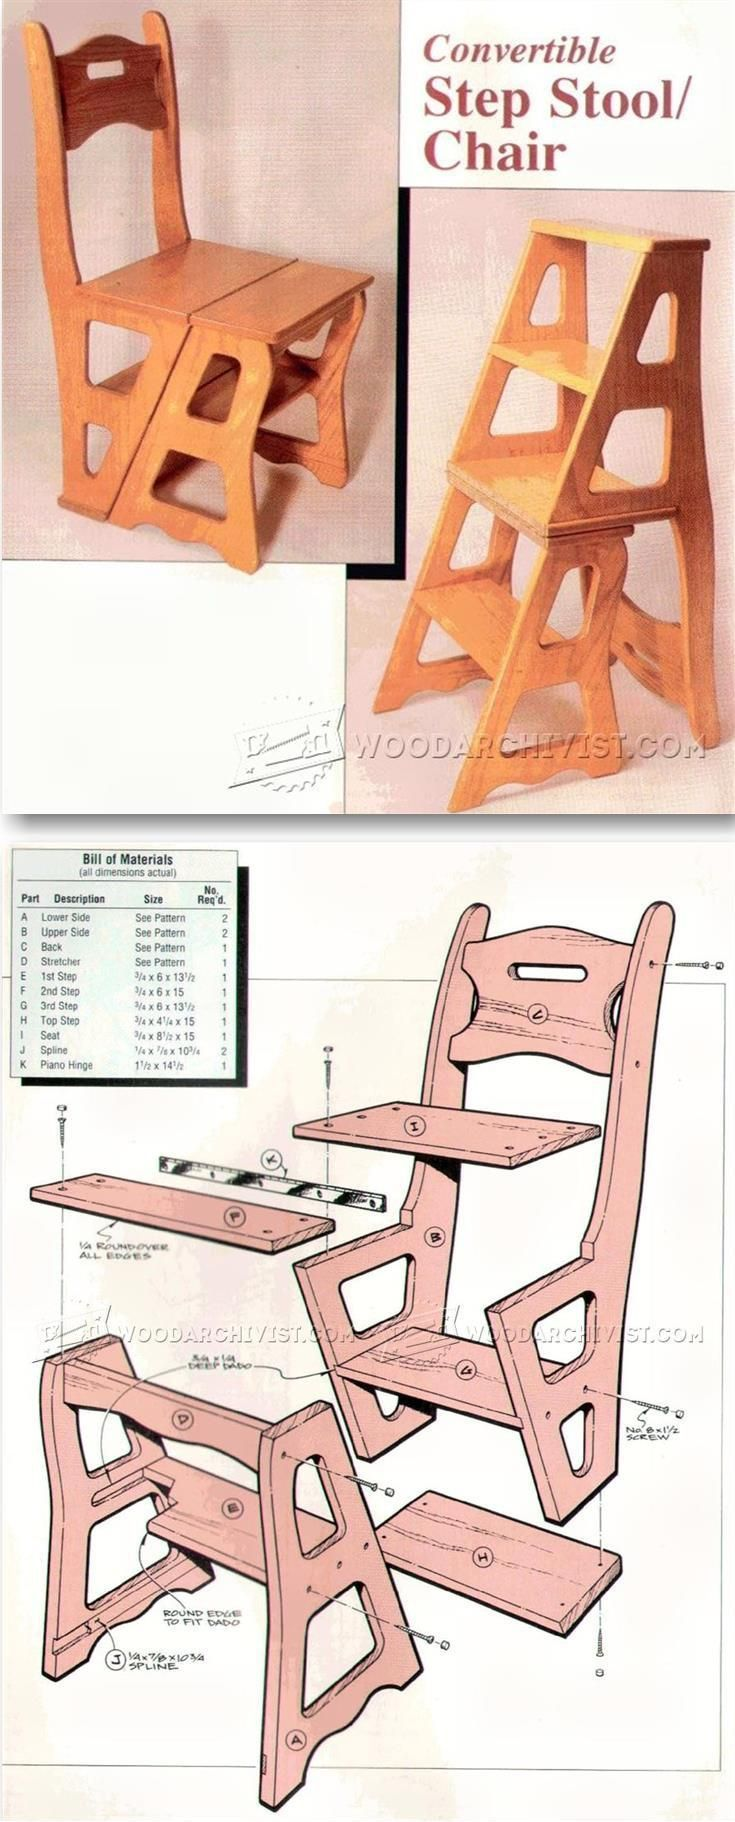 Tantra chair plans diy tantra chair diy woodworking plans and projects - 25 B 228 Sta Bilderna Om Madera P 229 Pinterest Ritningar